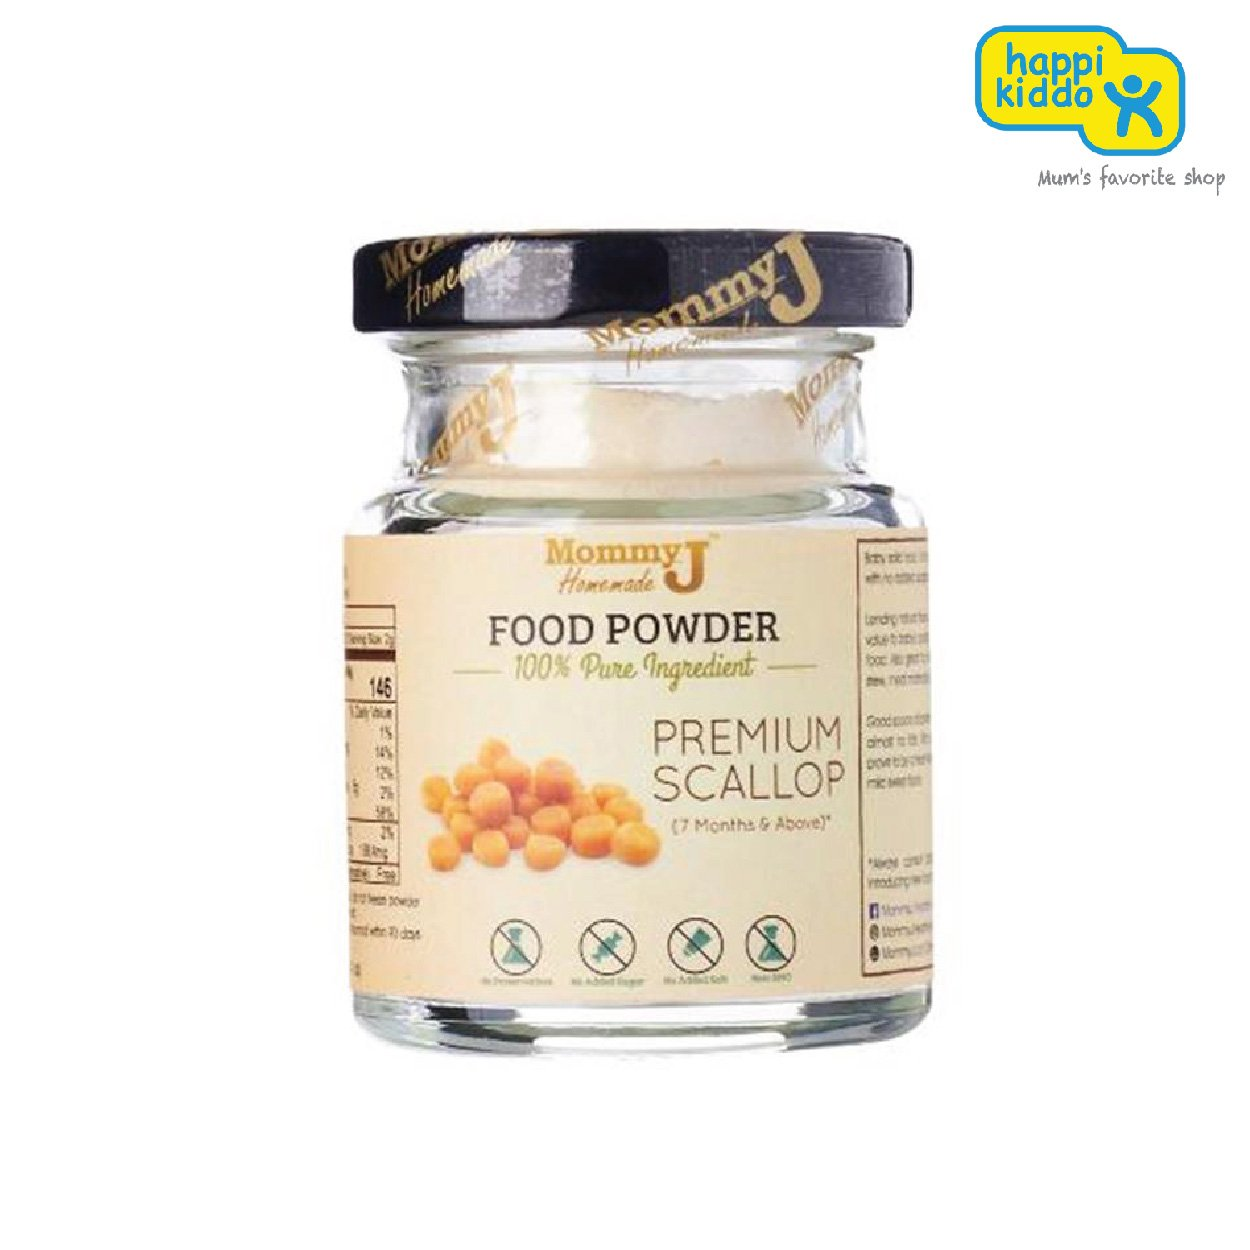 Mommy J Food Powder 40g